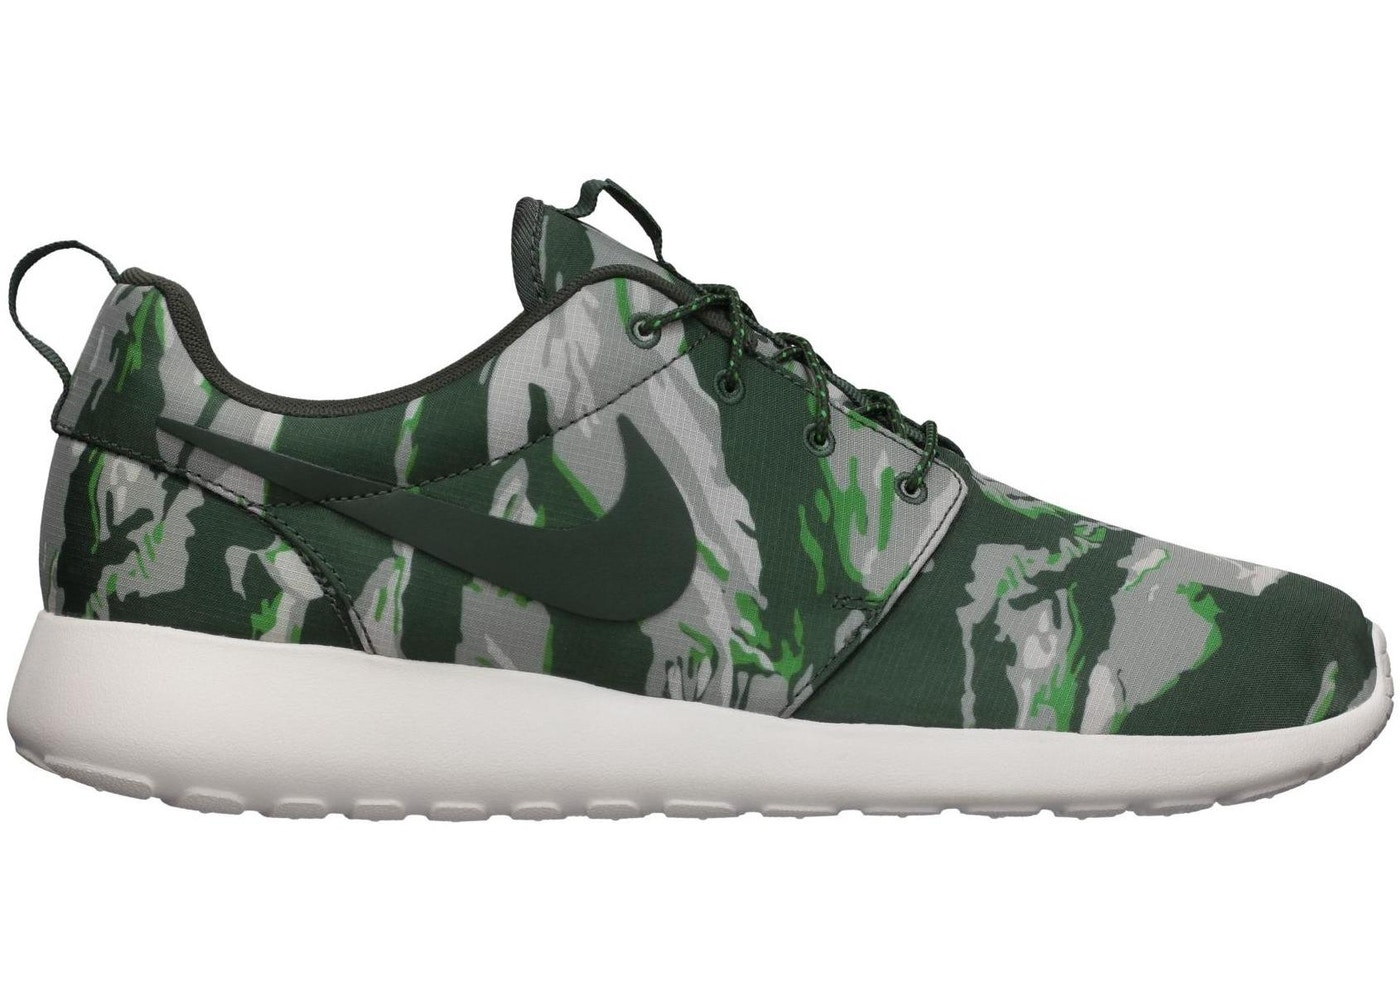 new style 9c7d4 1fa8b Sell. or Ask. Size  9.5. View All Bids. Nike Roshe Run Green Tiger Camo